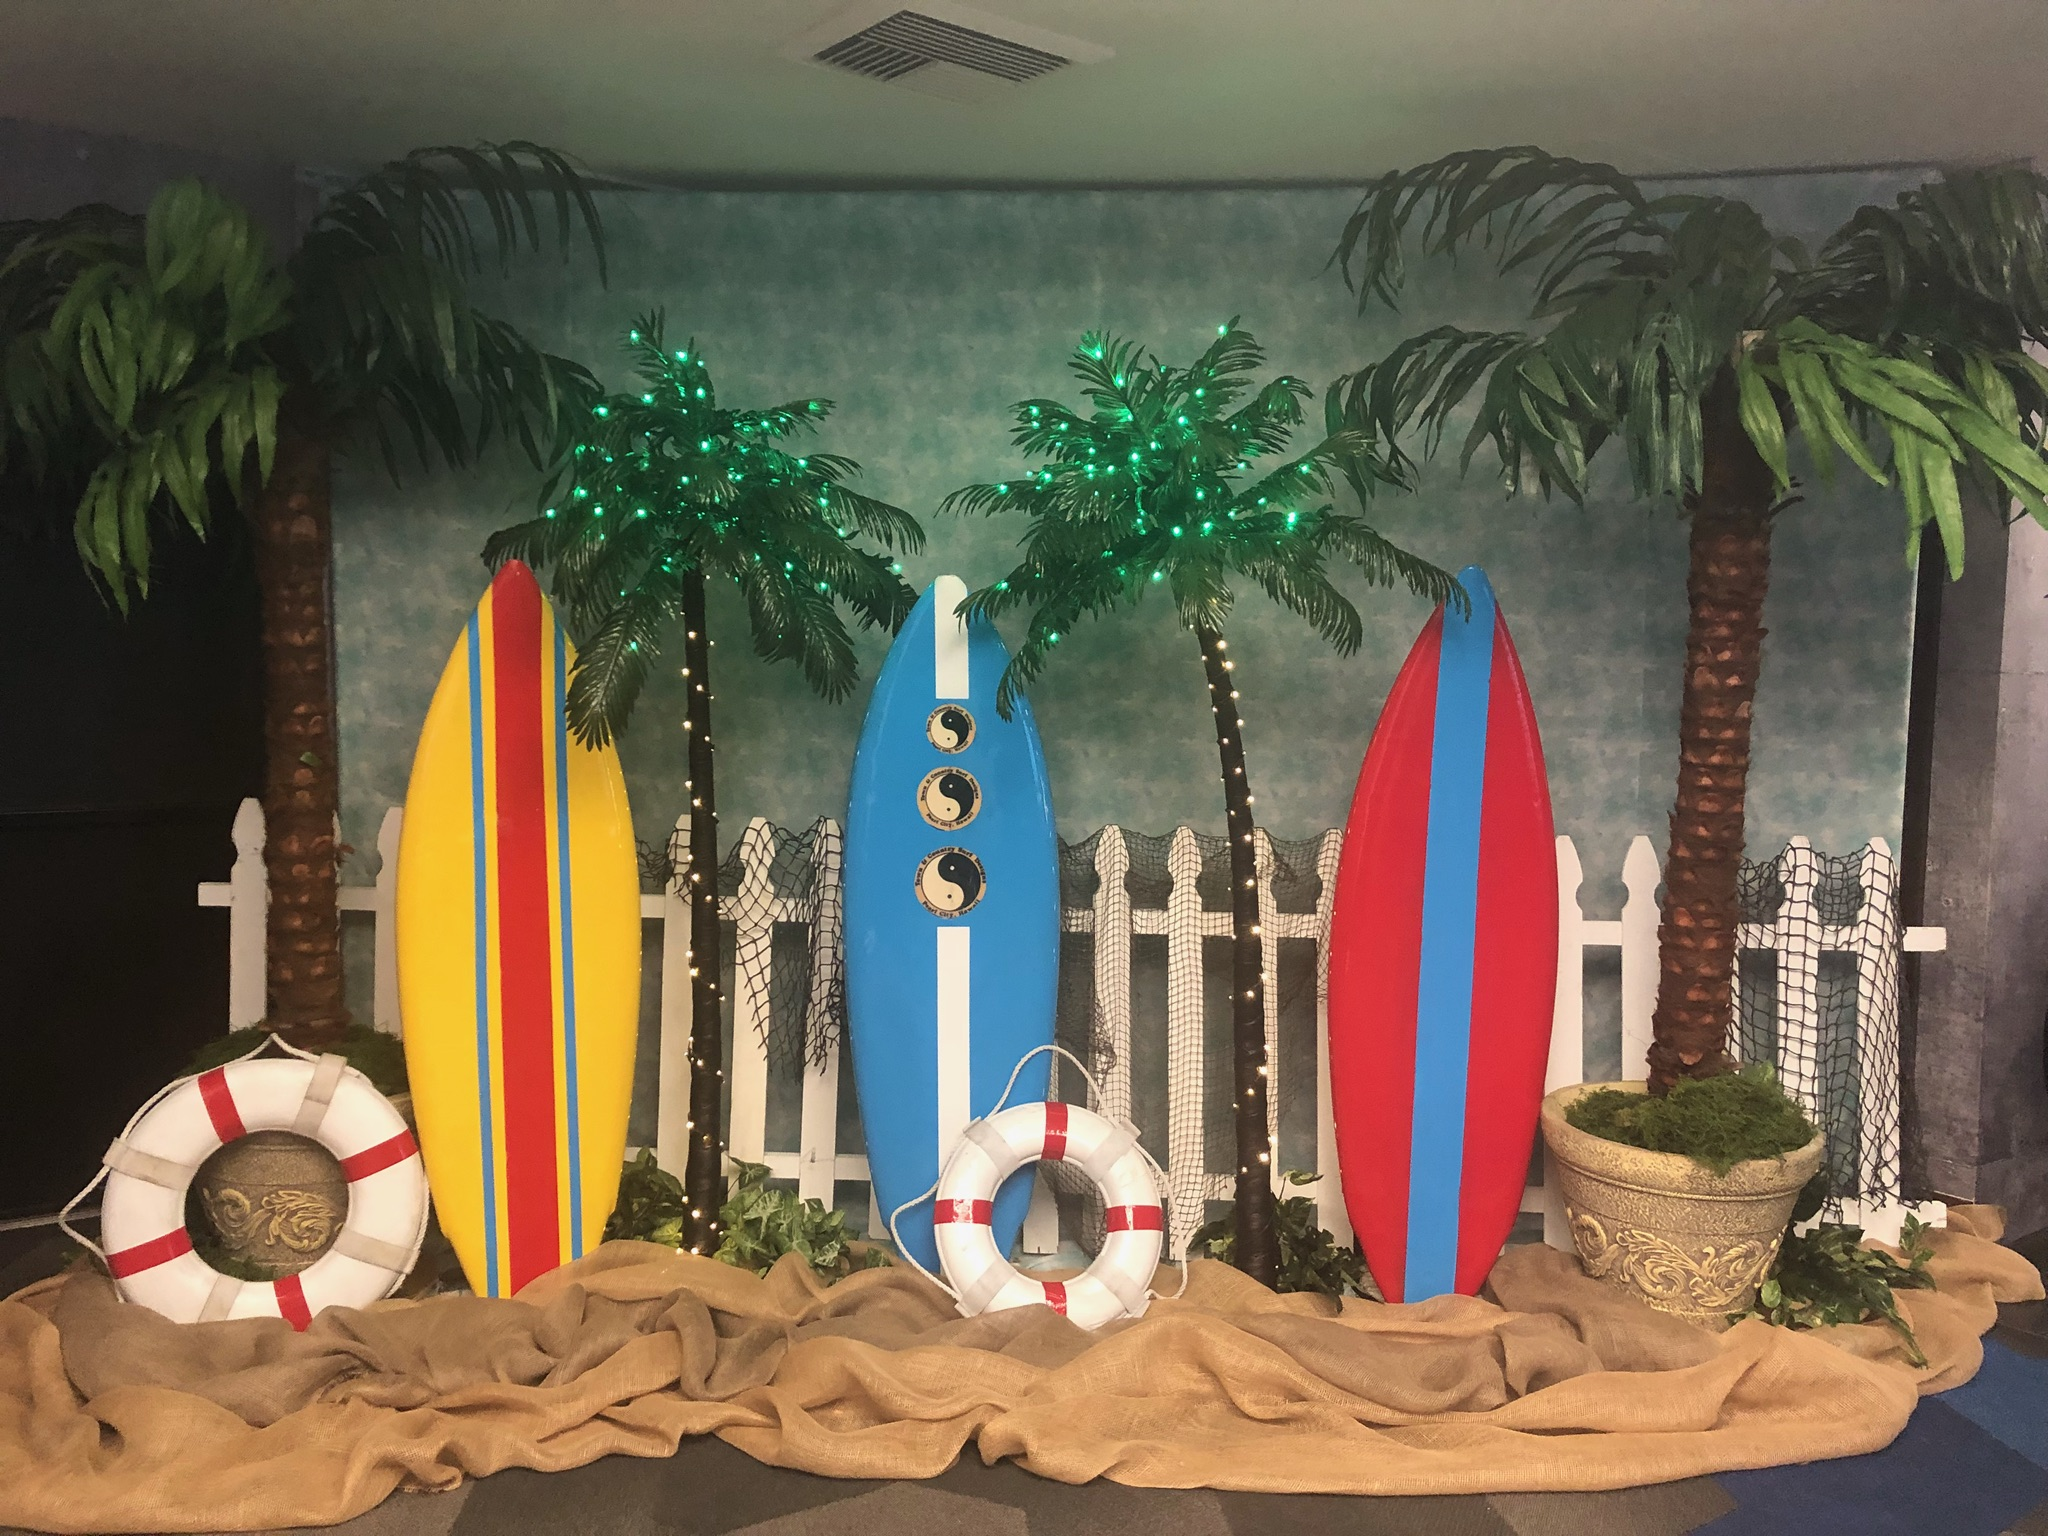 palm trees and surf boards